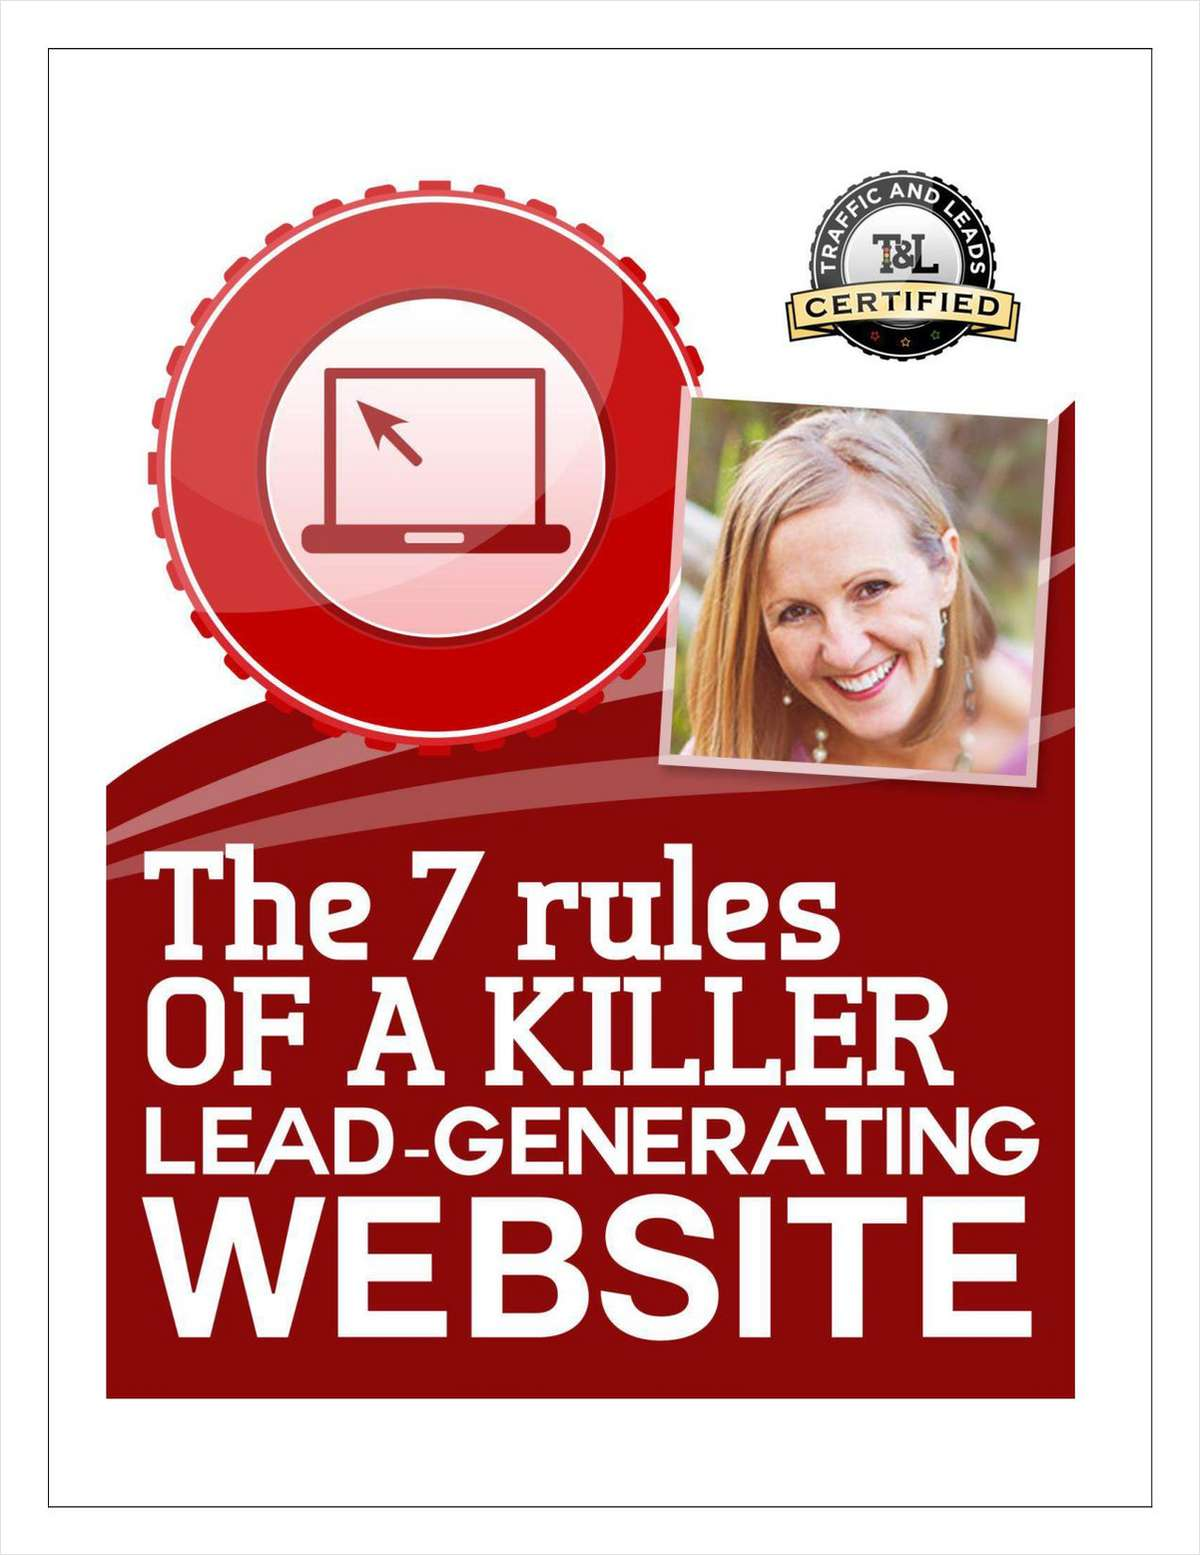 The 7 Rules of a Killer Lead-Generation Website